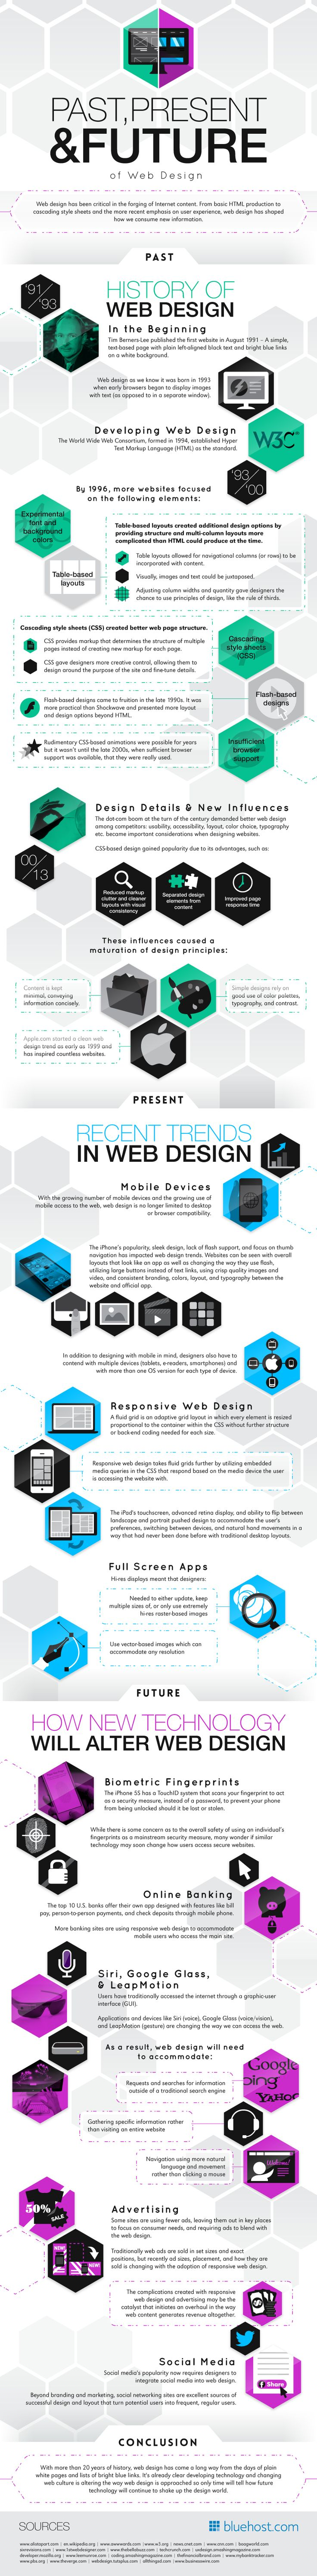 Past, Present And Future of Web Design #Infographic #WebDesign